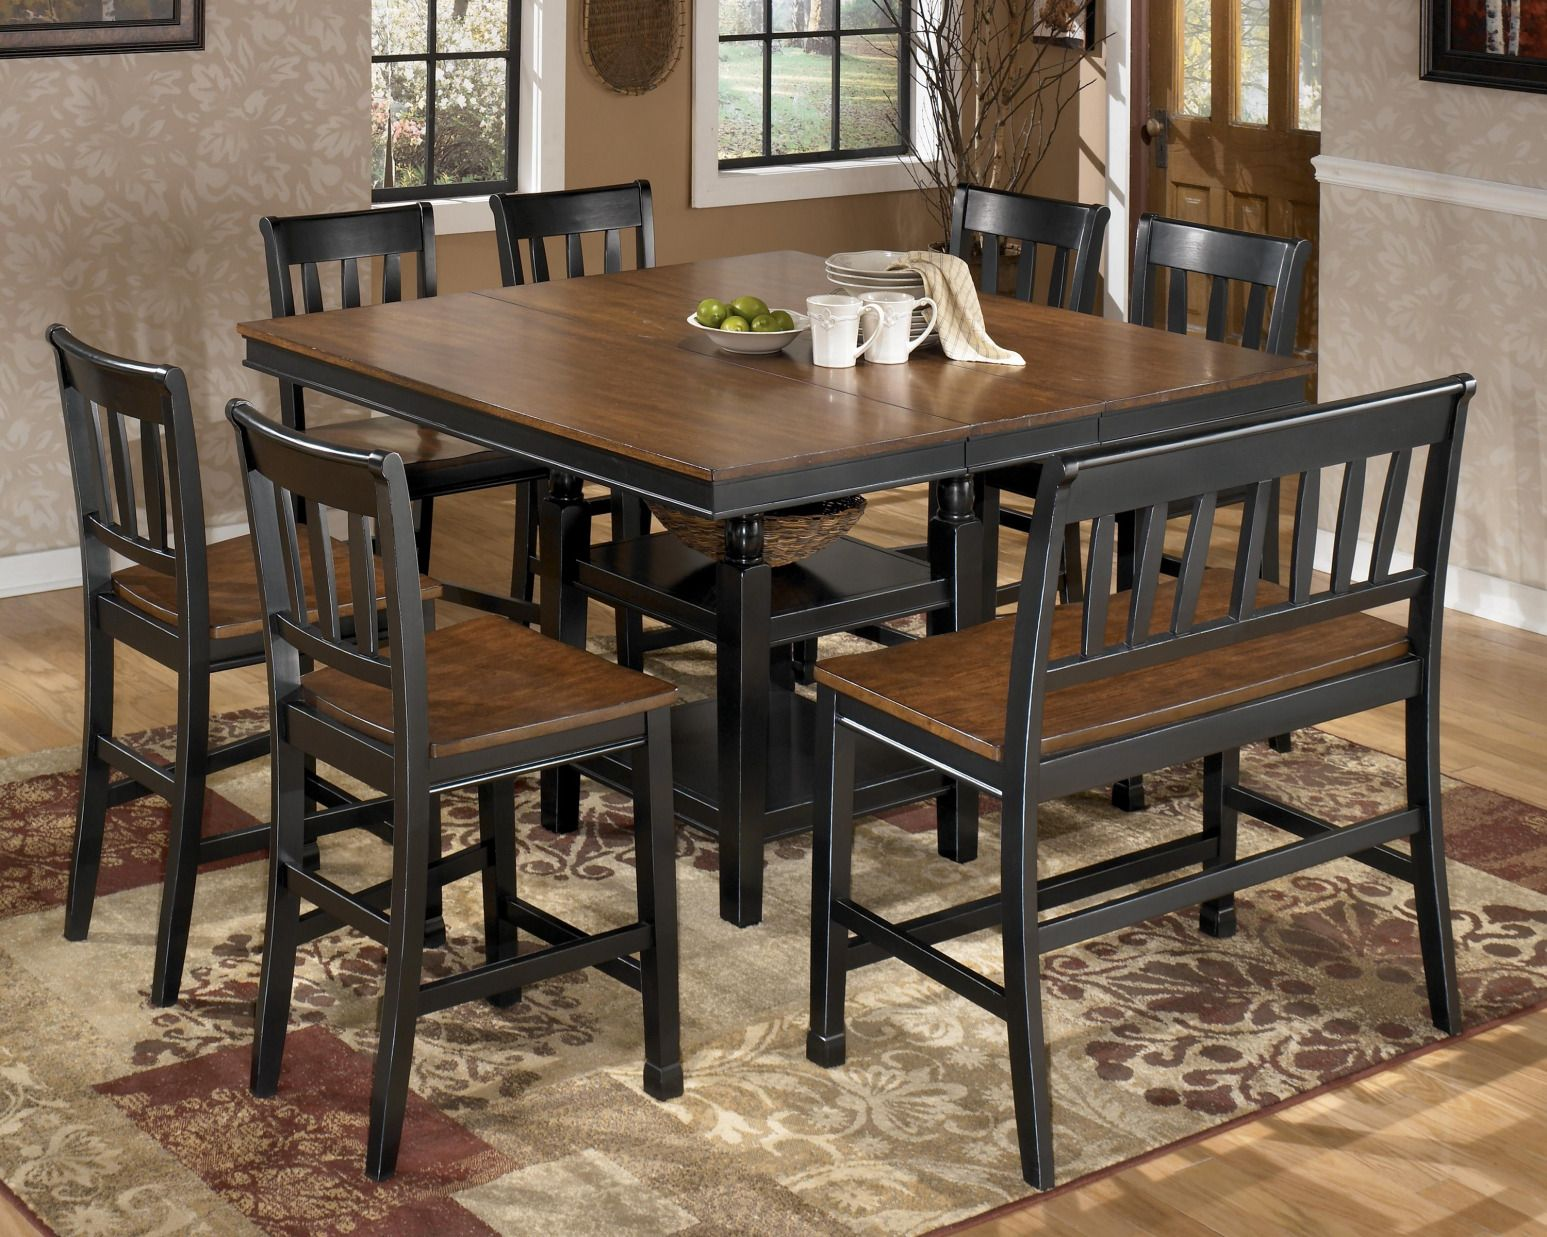 Dining Room Table Round Seats 8 Classy 100 Round Kitchen Table Seats 8  Best Color Furniture For You Decorating Design